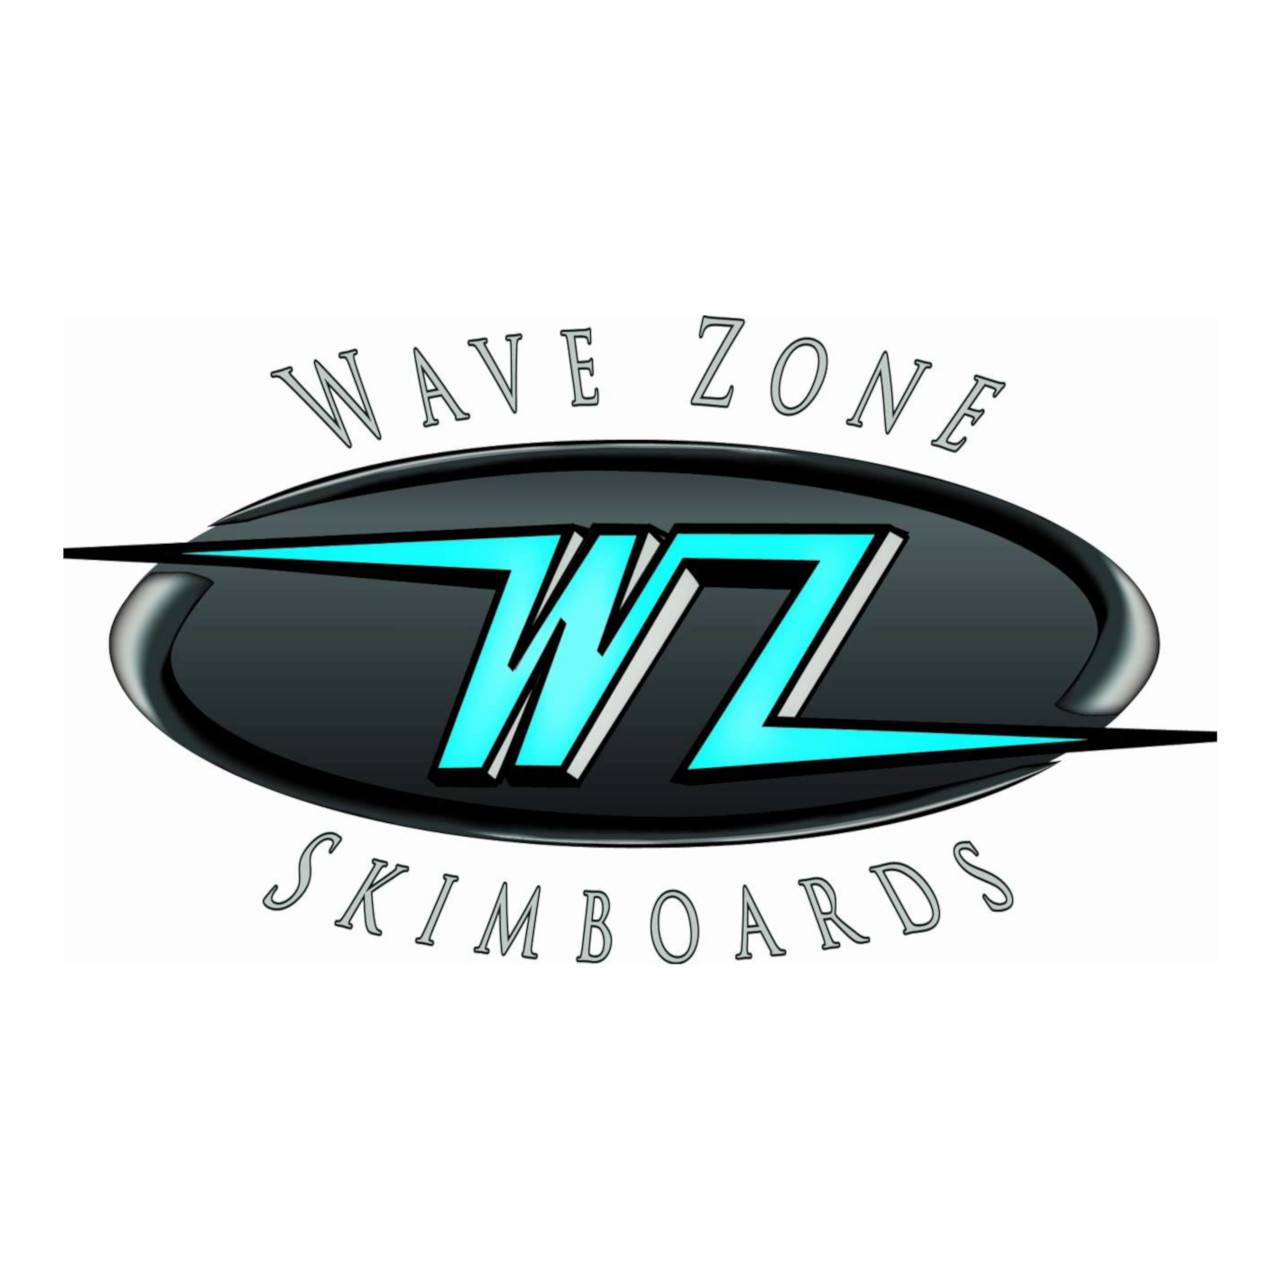 Wave Zone Skimboards Logo